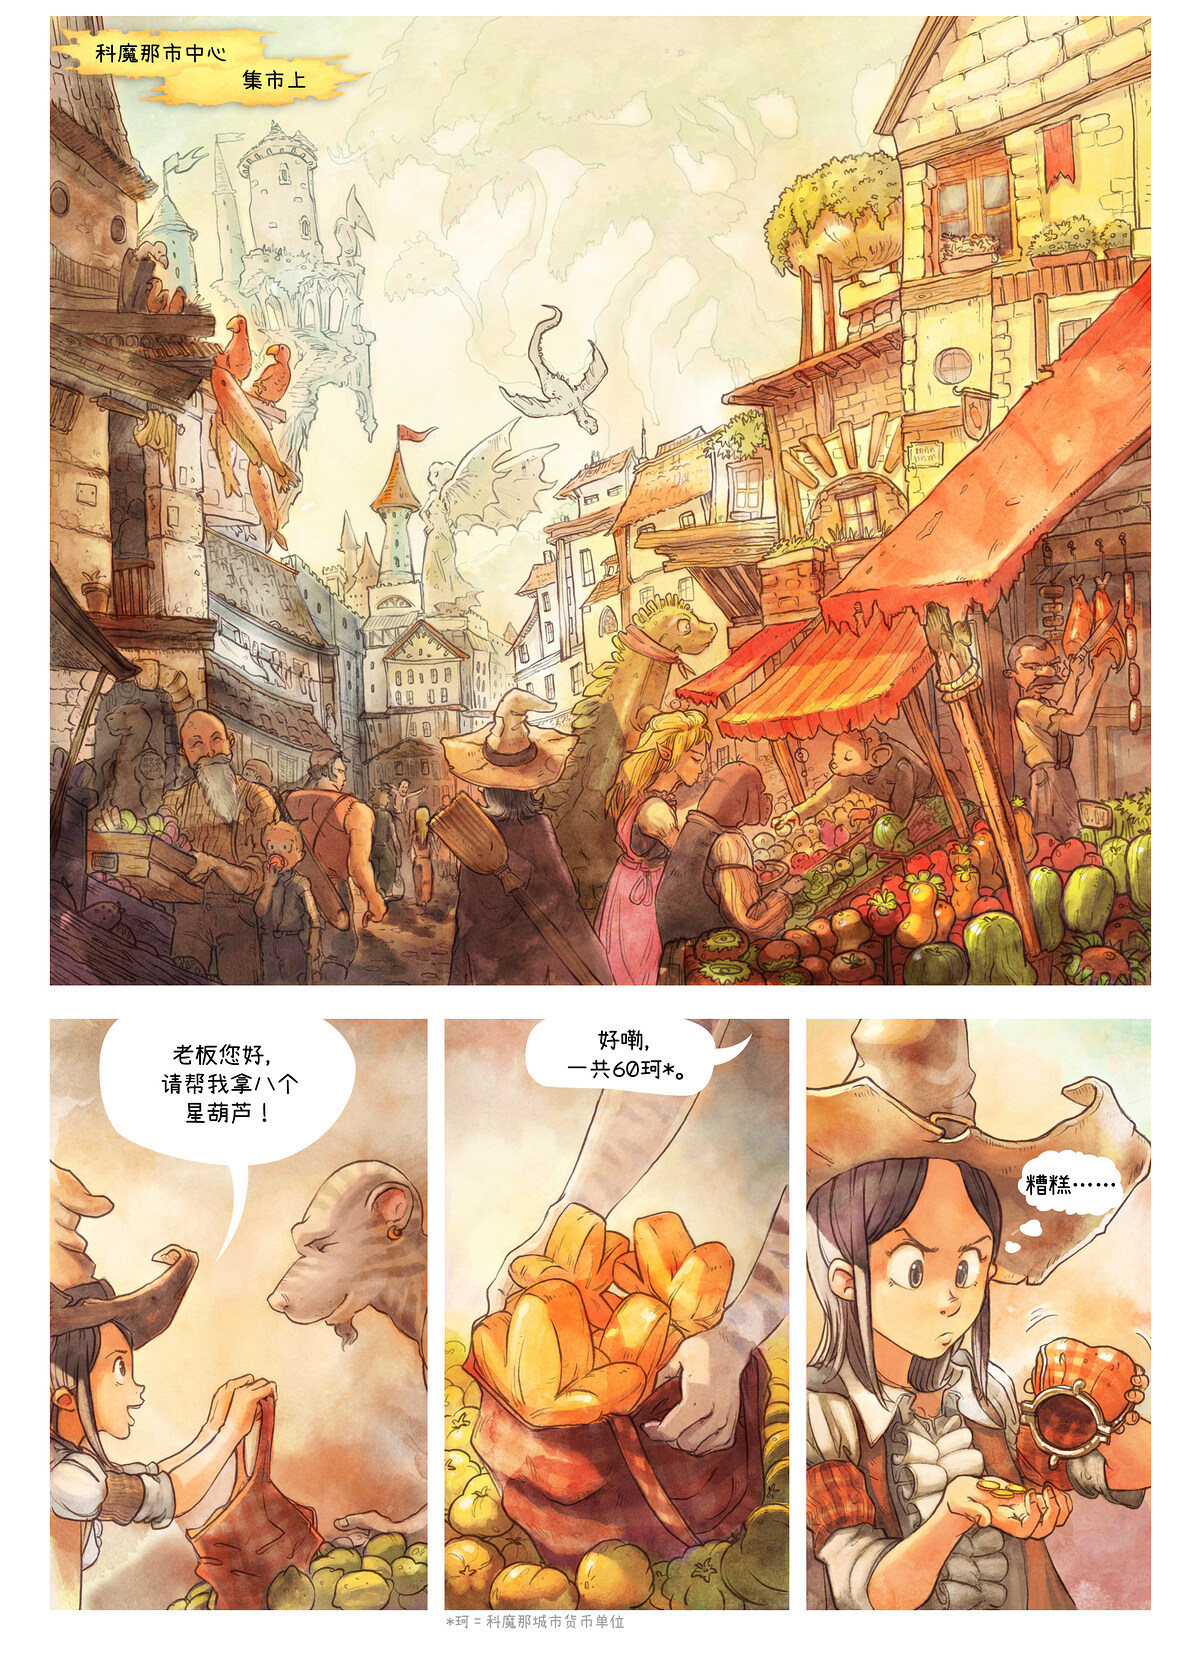 A webcomic page of Pepper&Carrot, 漫画全集 3 [cn], 页面 1